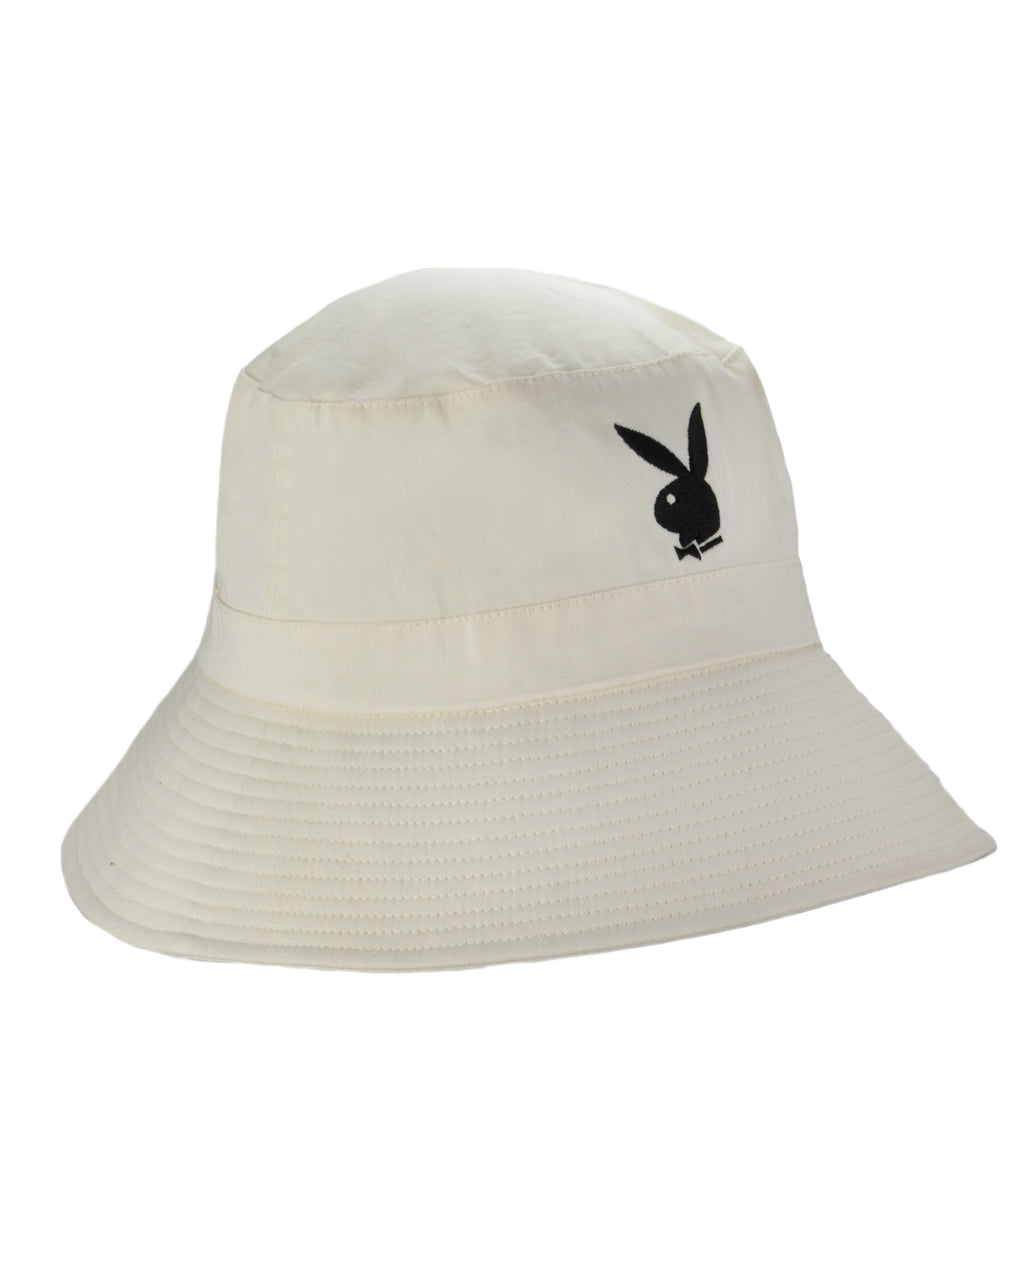 Playboy Bucket Hat